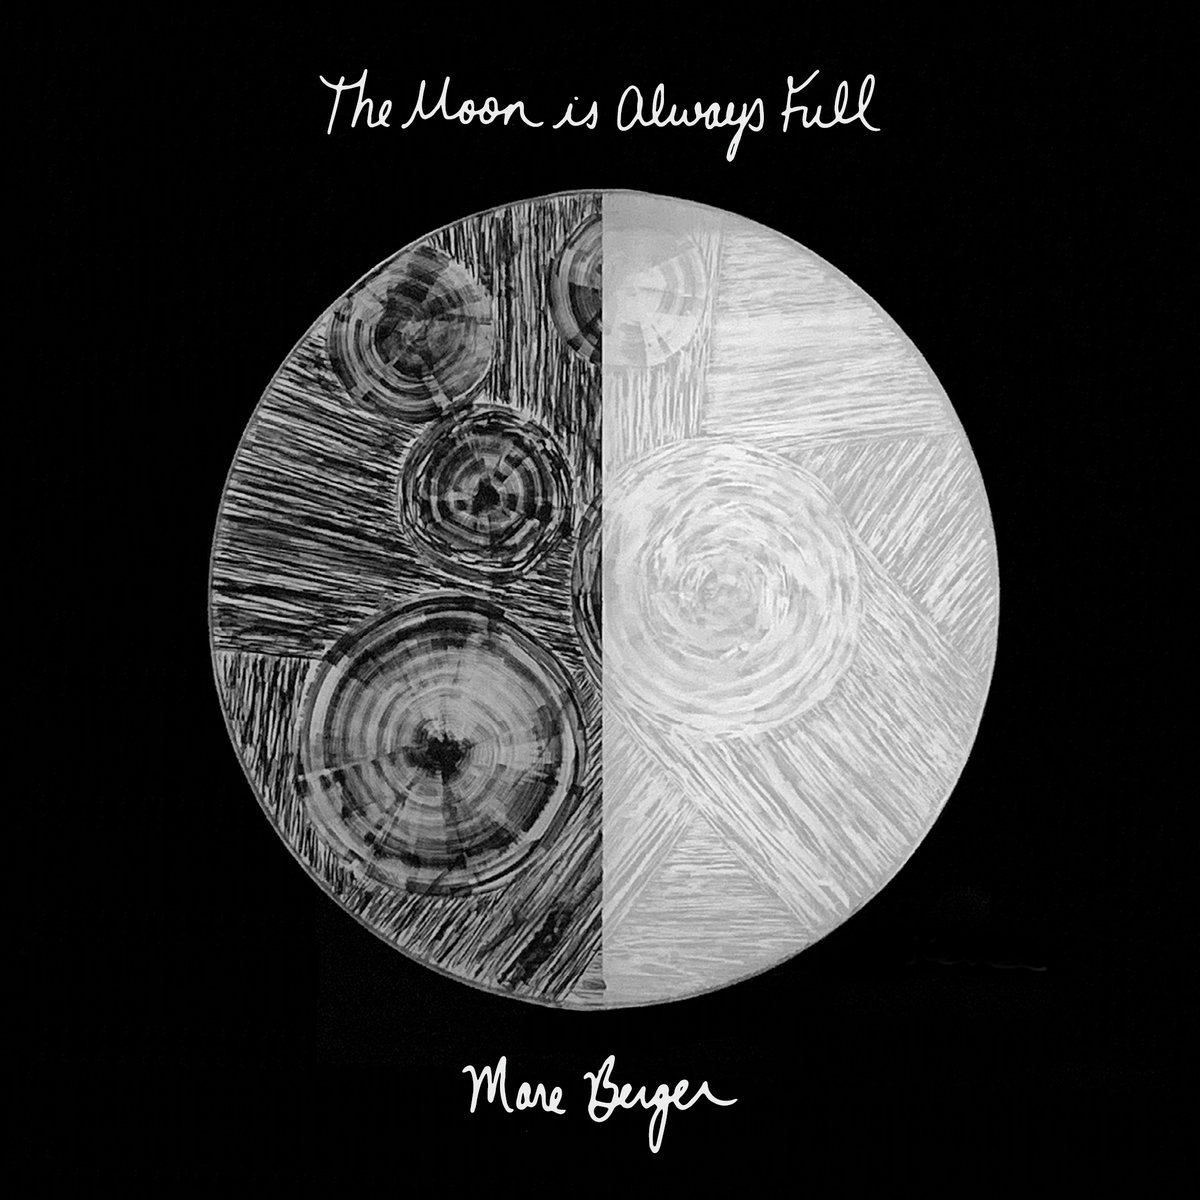 Mare Berger | The Moon Is Always Full | Self-Released